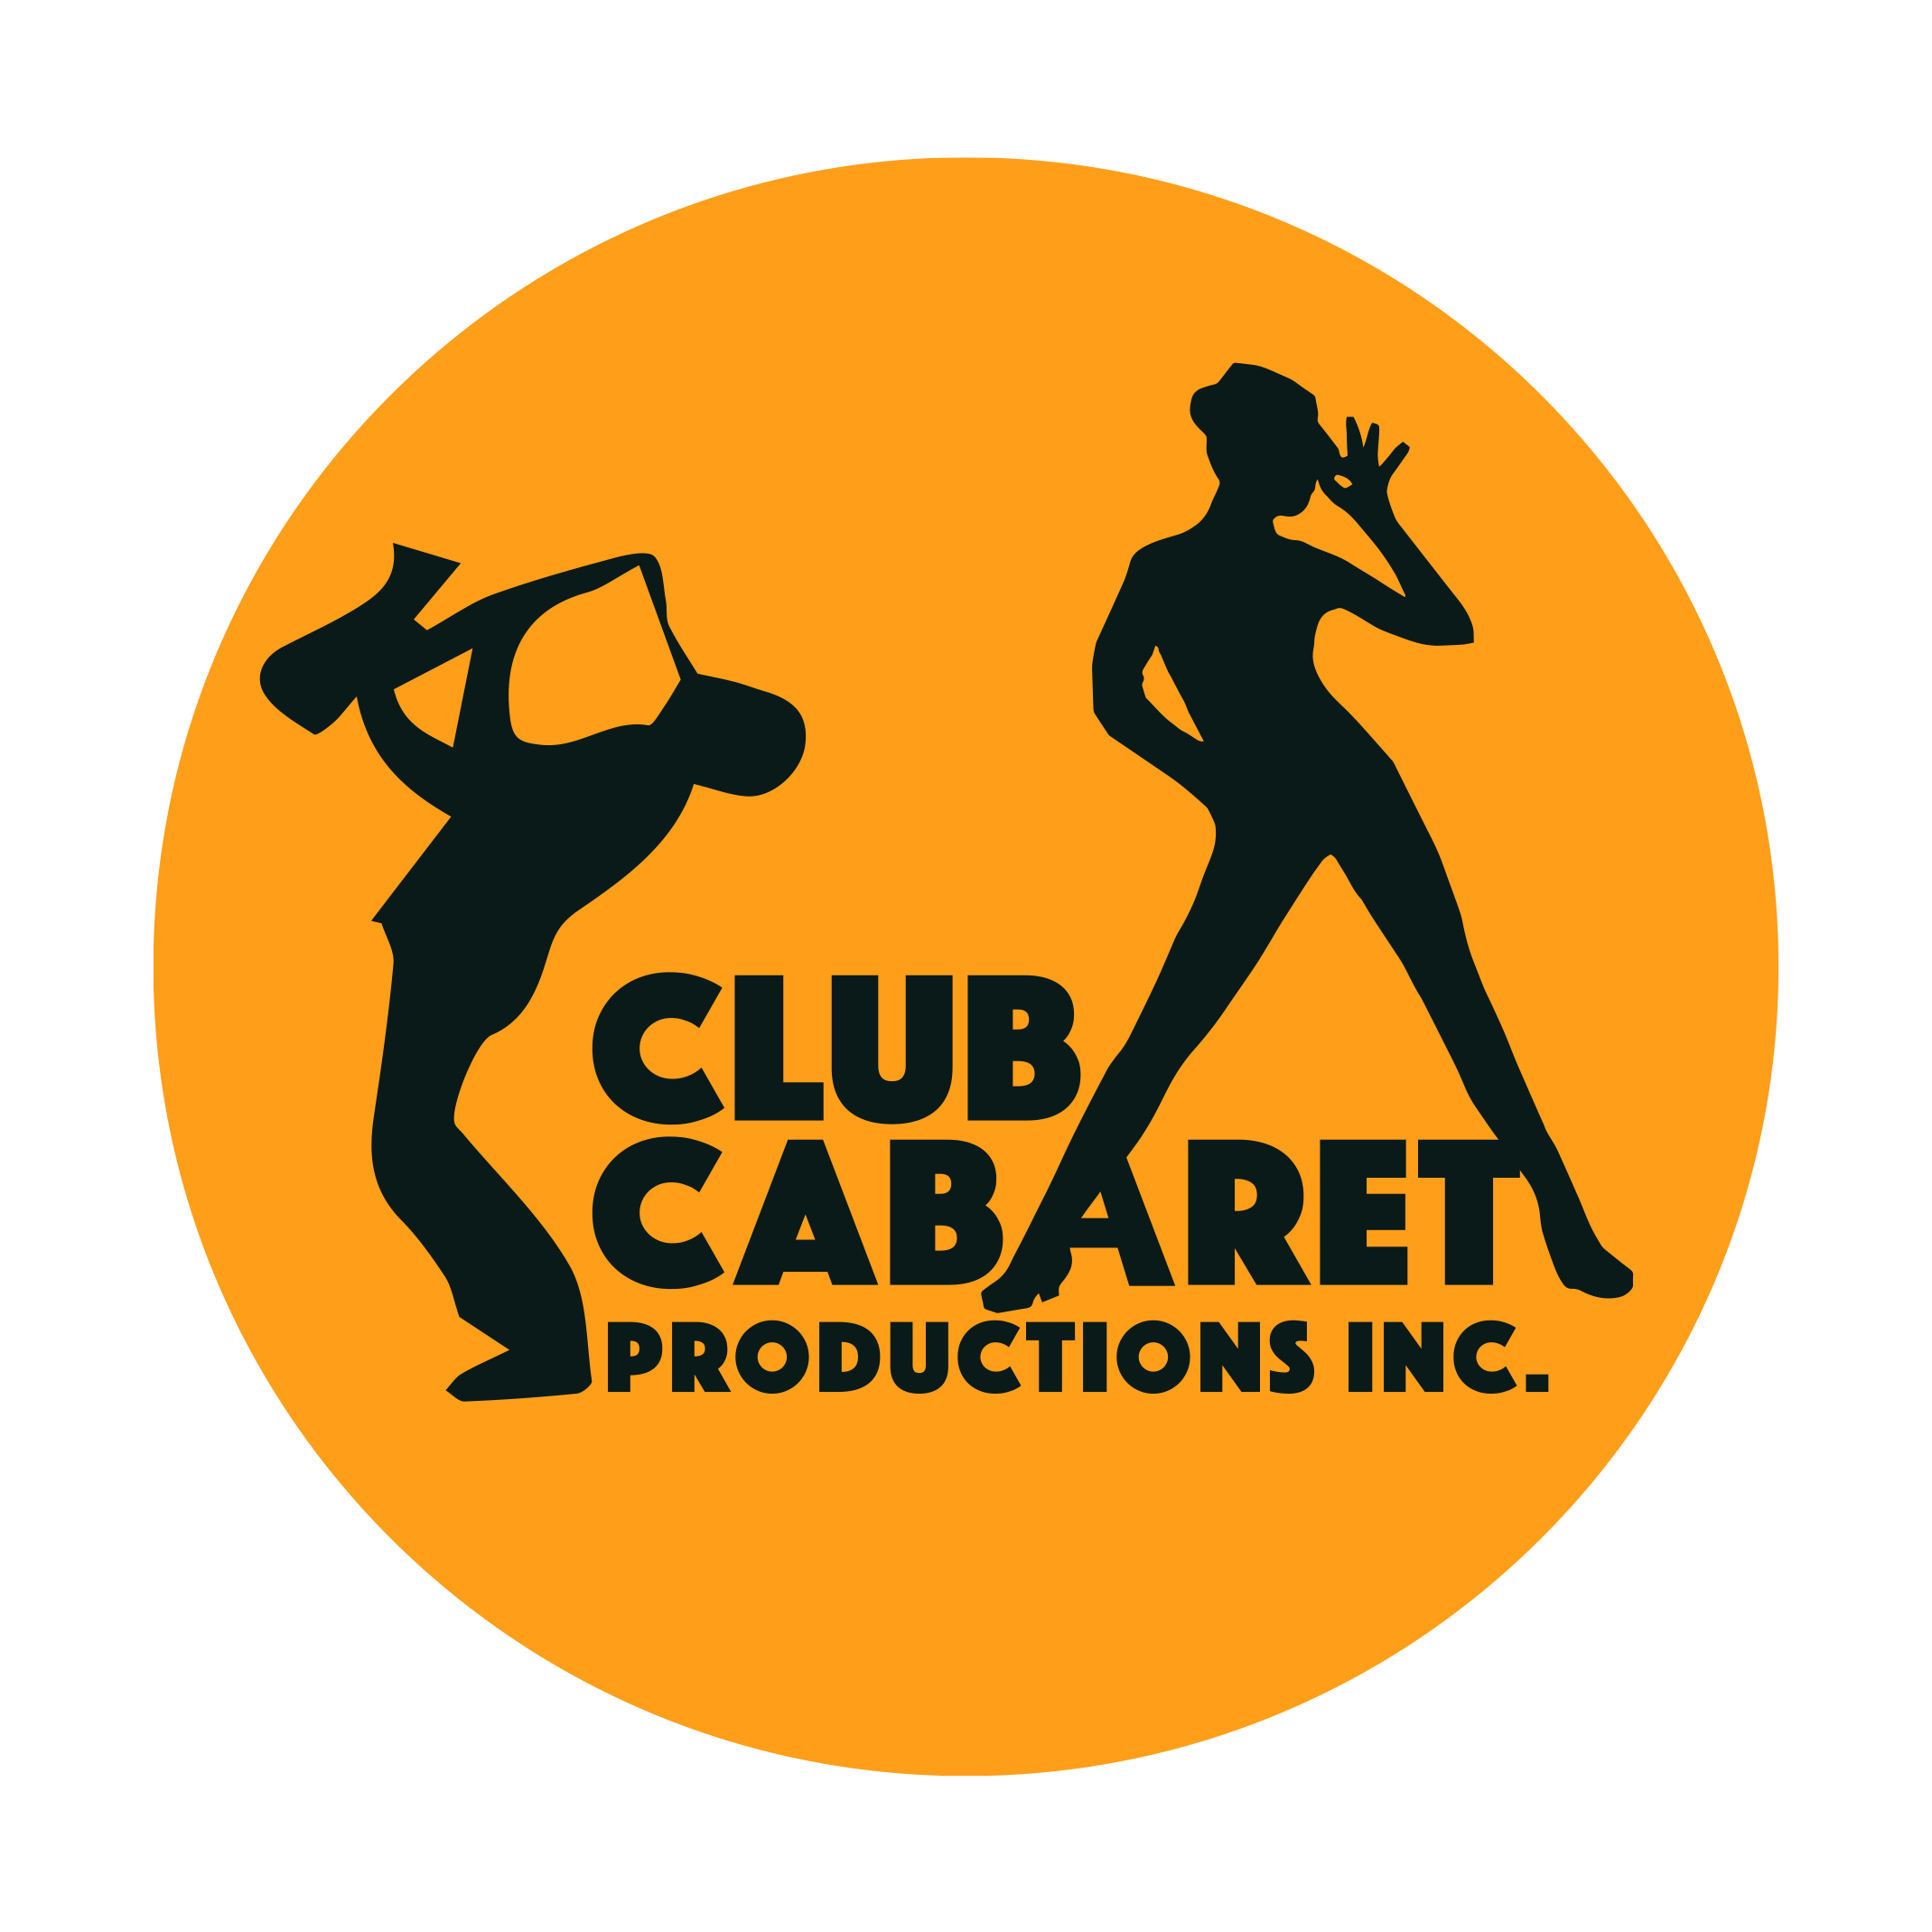 Club Cabaret Productions Inc